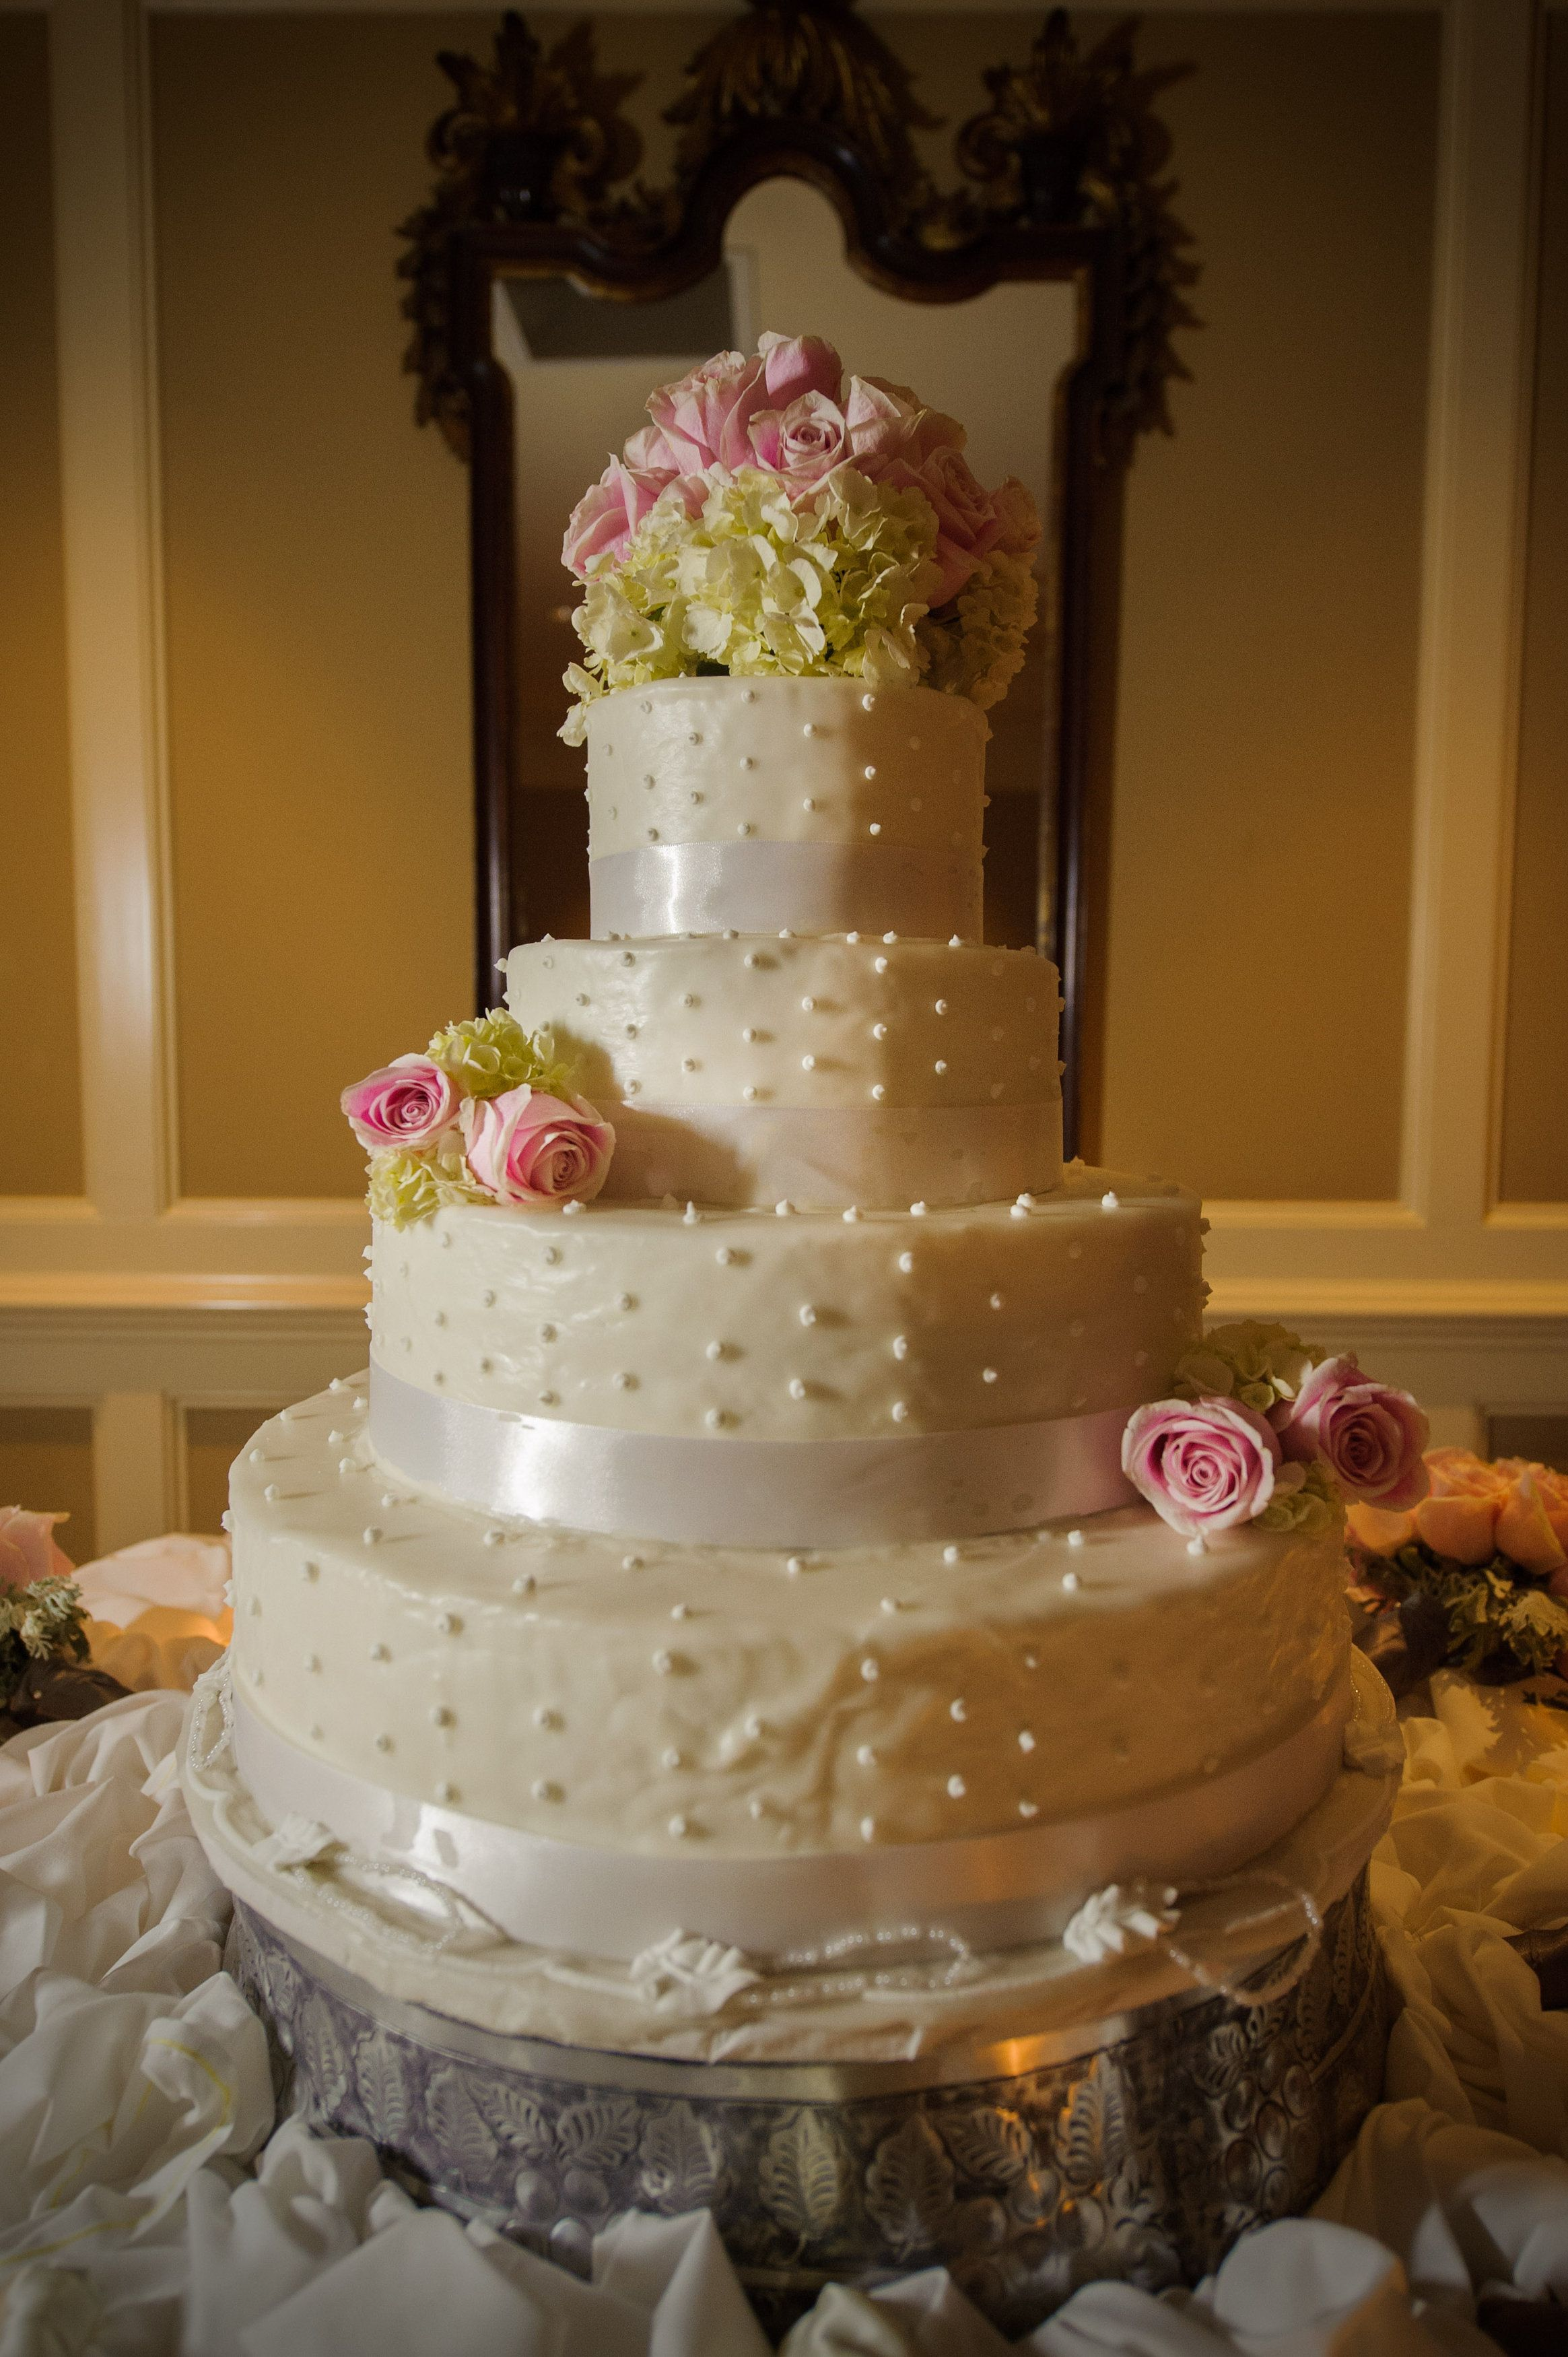 Cake Made By Swiss Bakery In New Orleans How To Make Fairytale Weddings